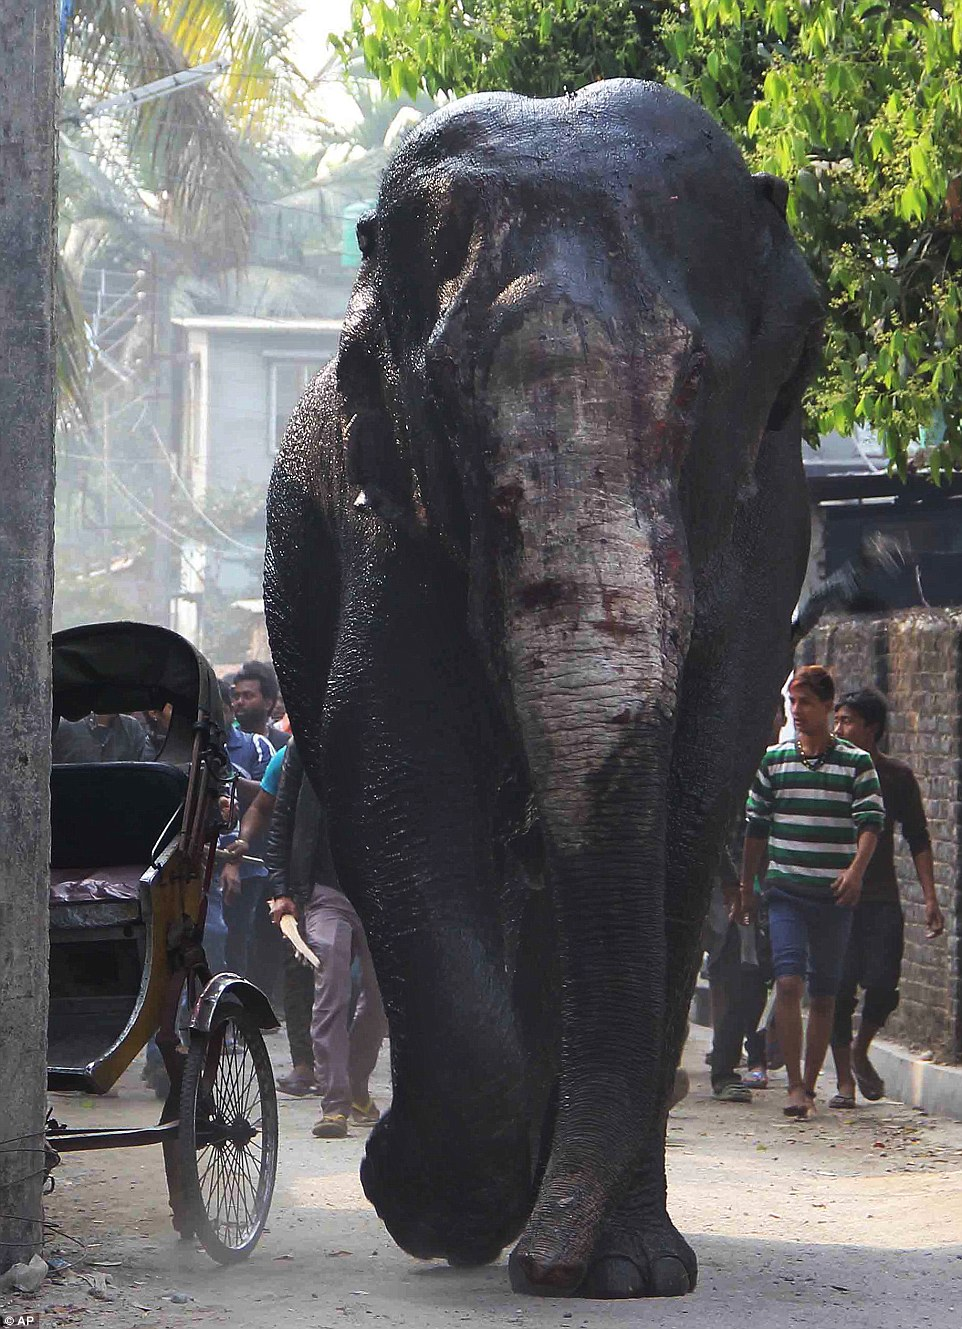 The panicked elephant was seen covered in blood and cuts as it careered down the streets